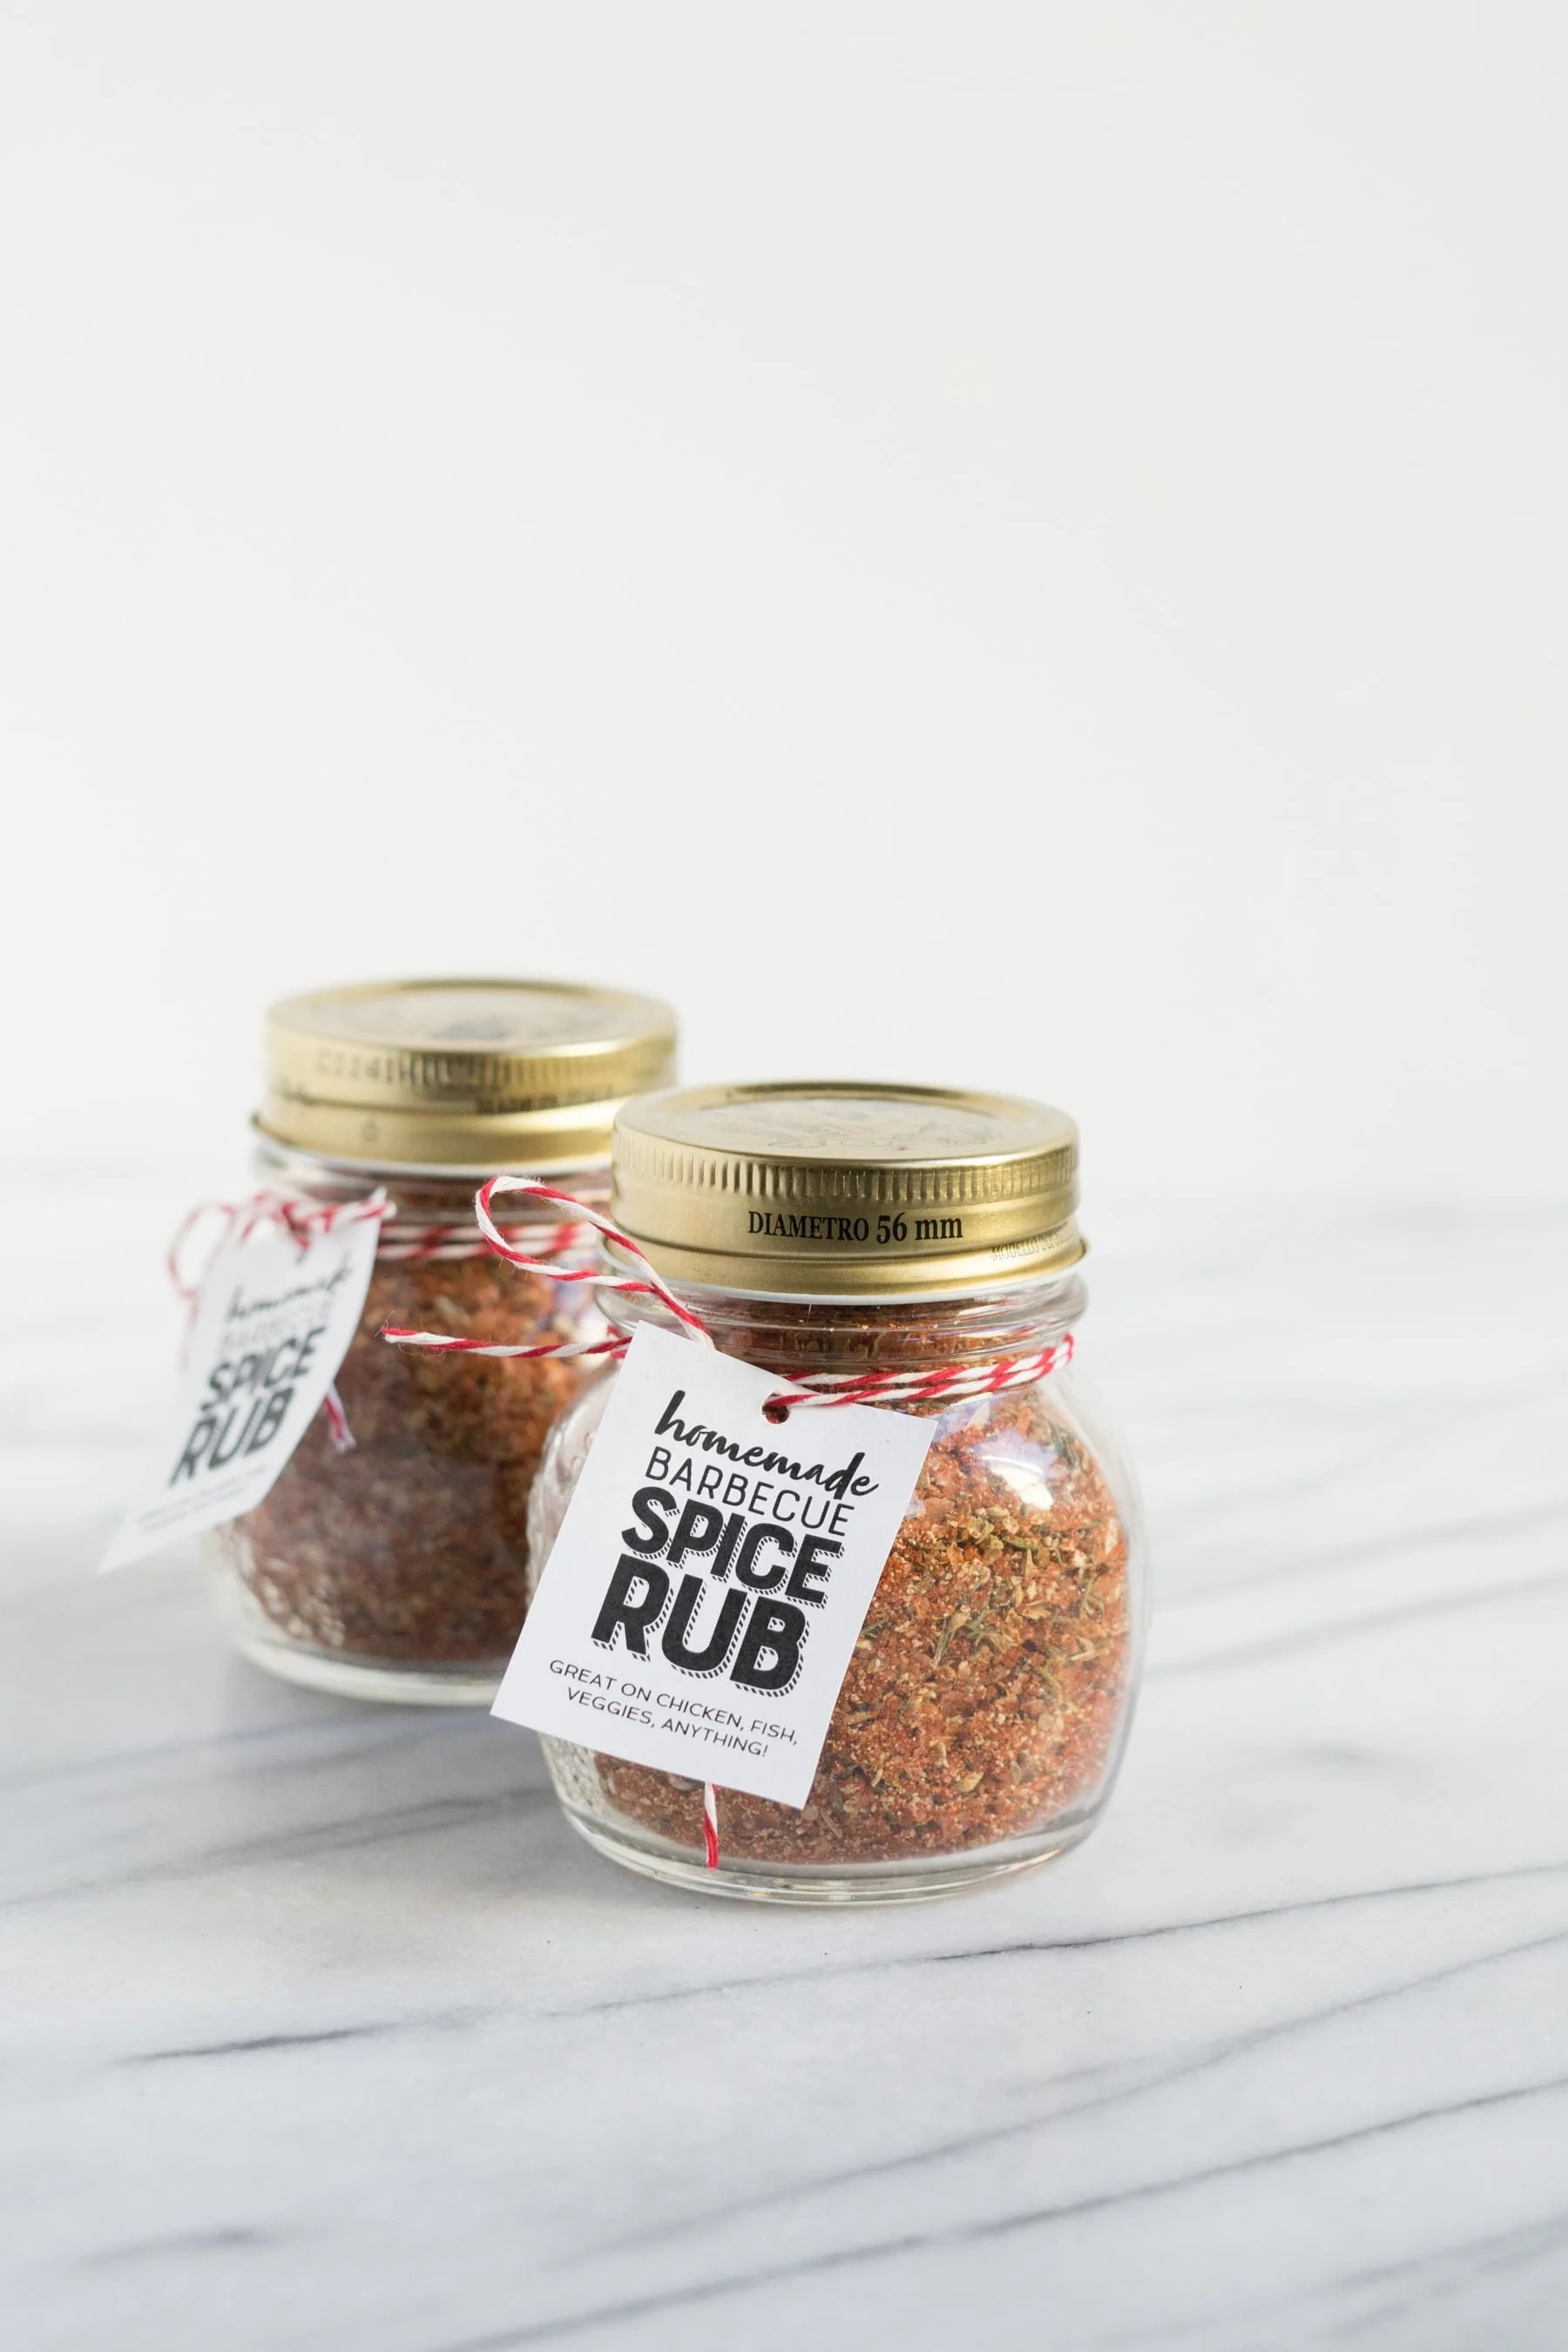 Two jars of Barbecue Spice Rub